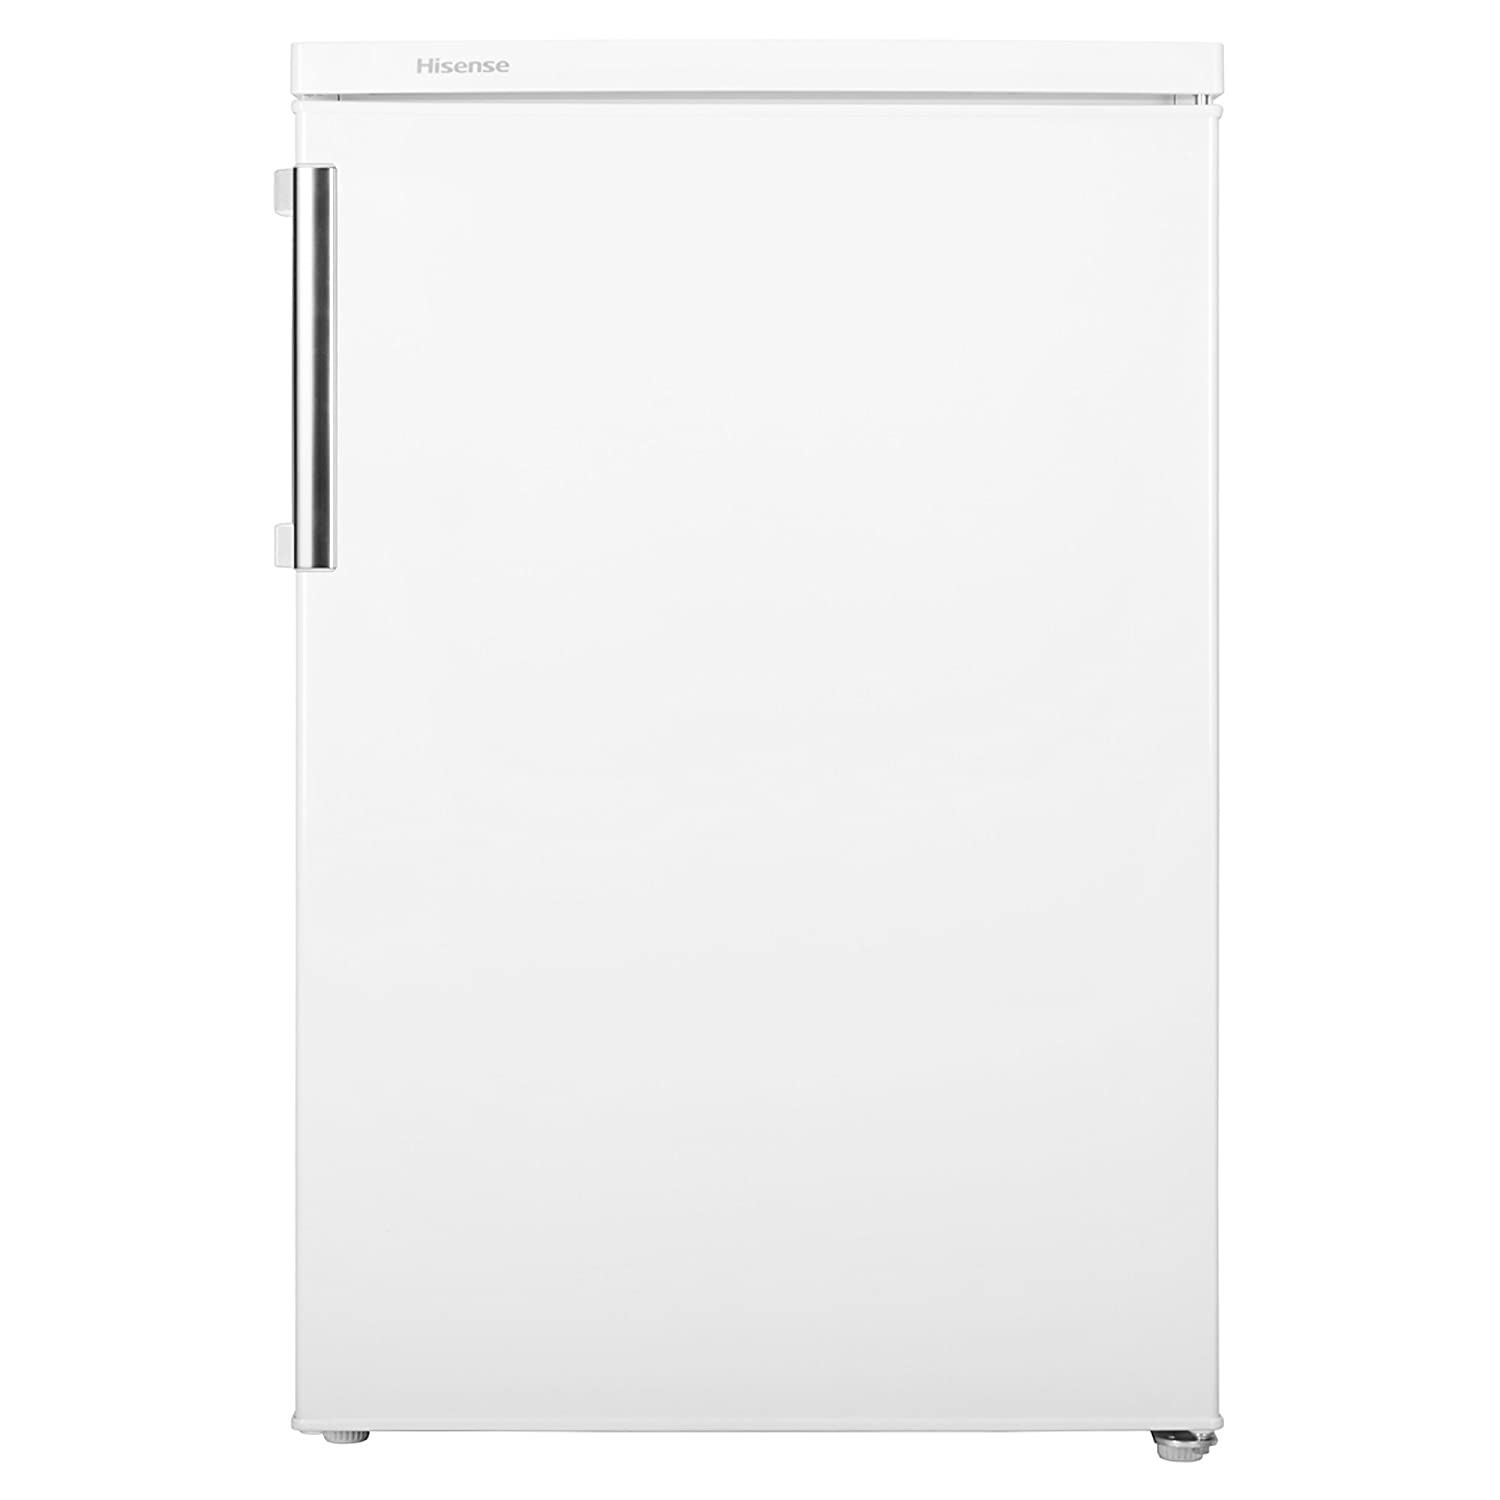 Hisense FV105D4BW2 Freestanding Under Counter Freezer - White